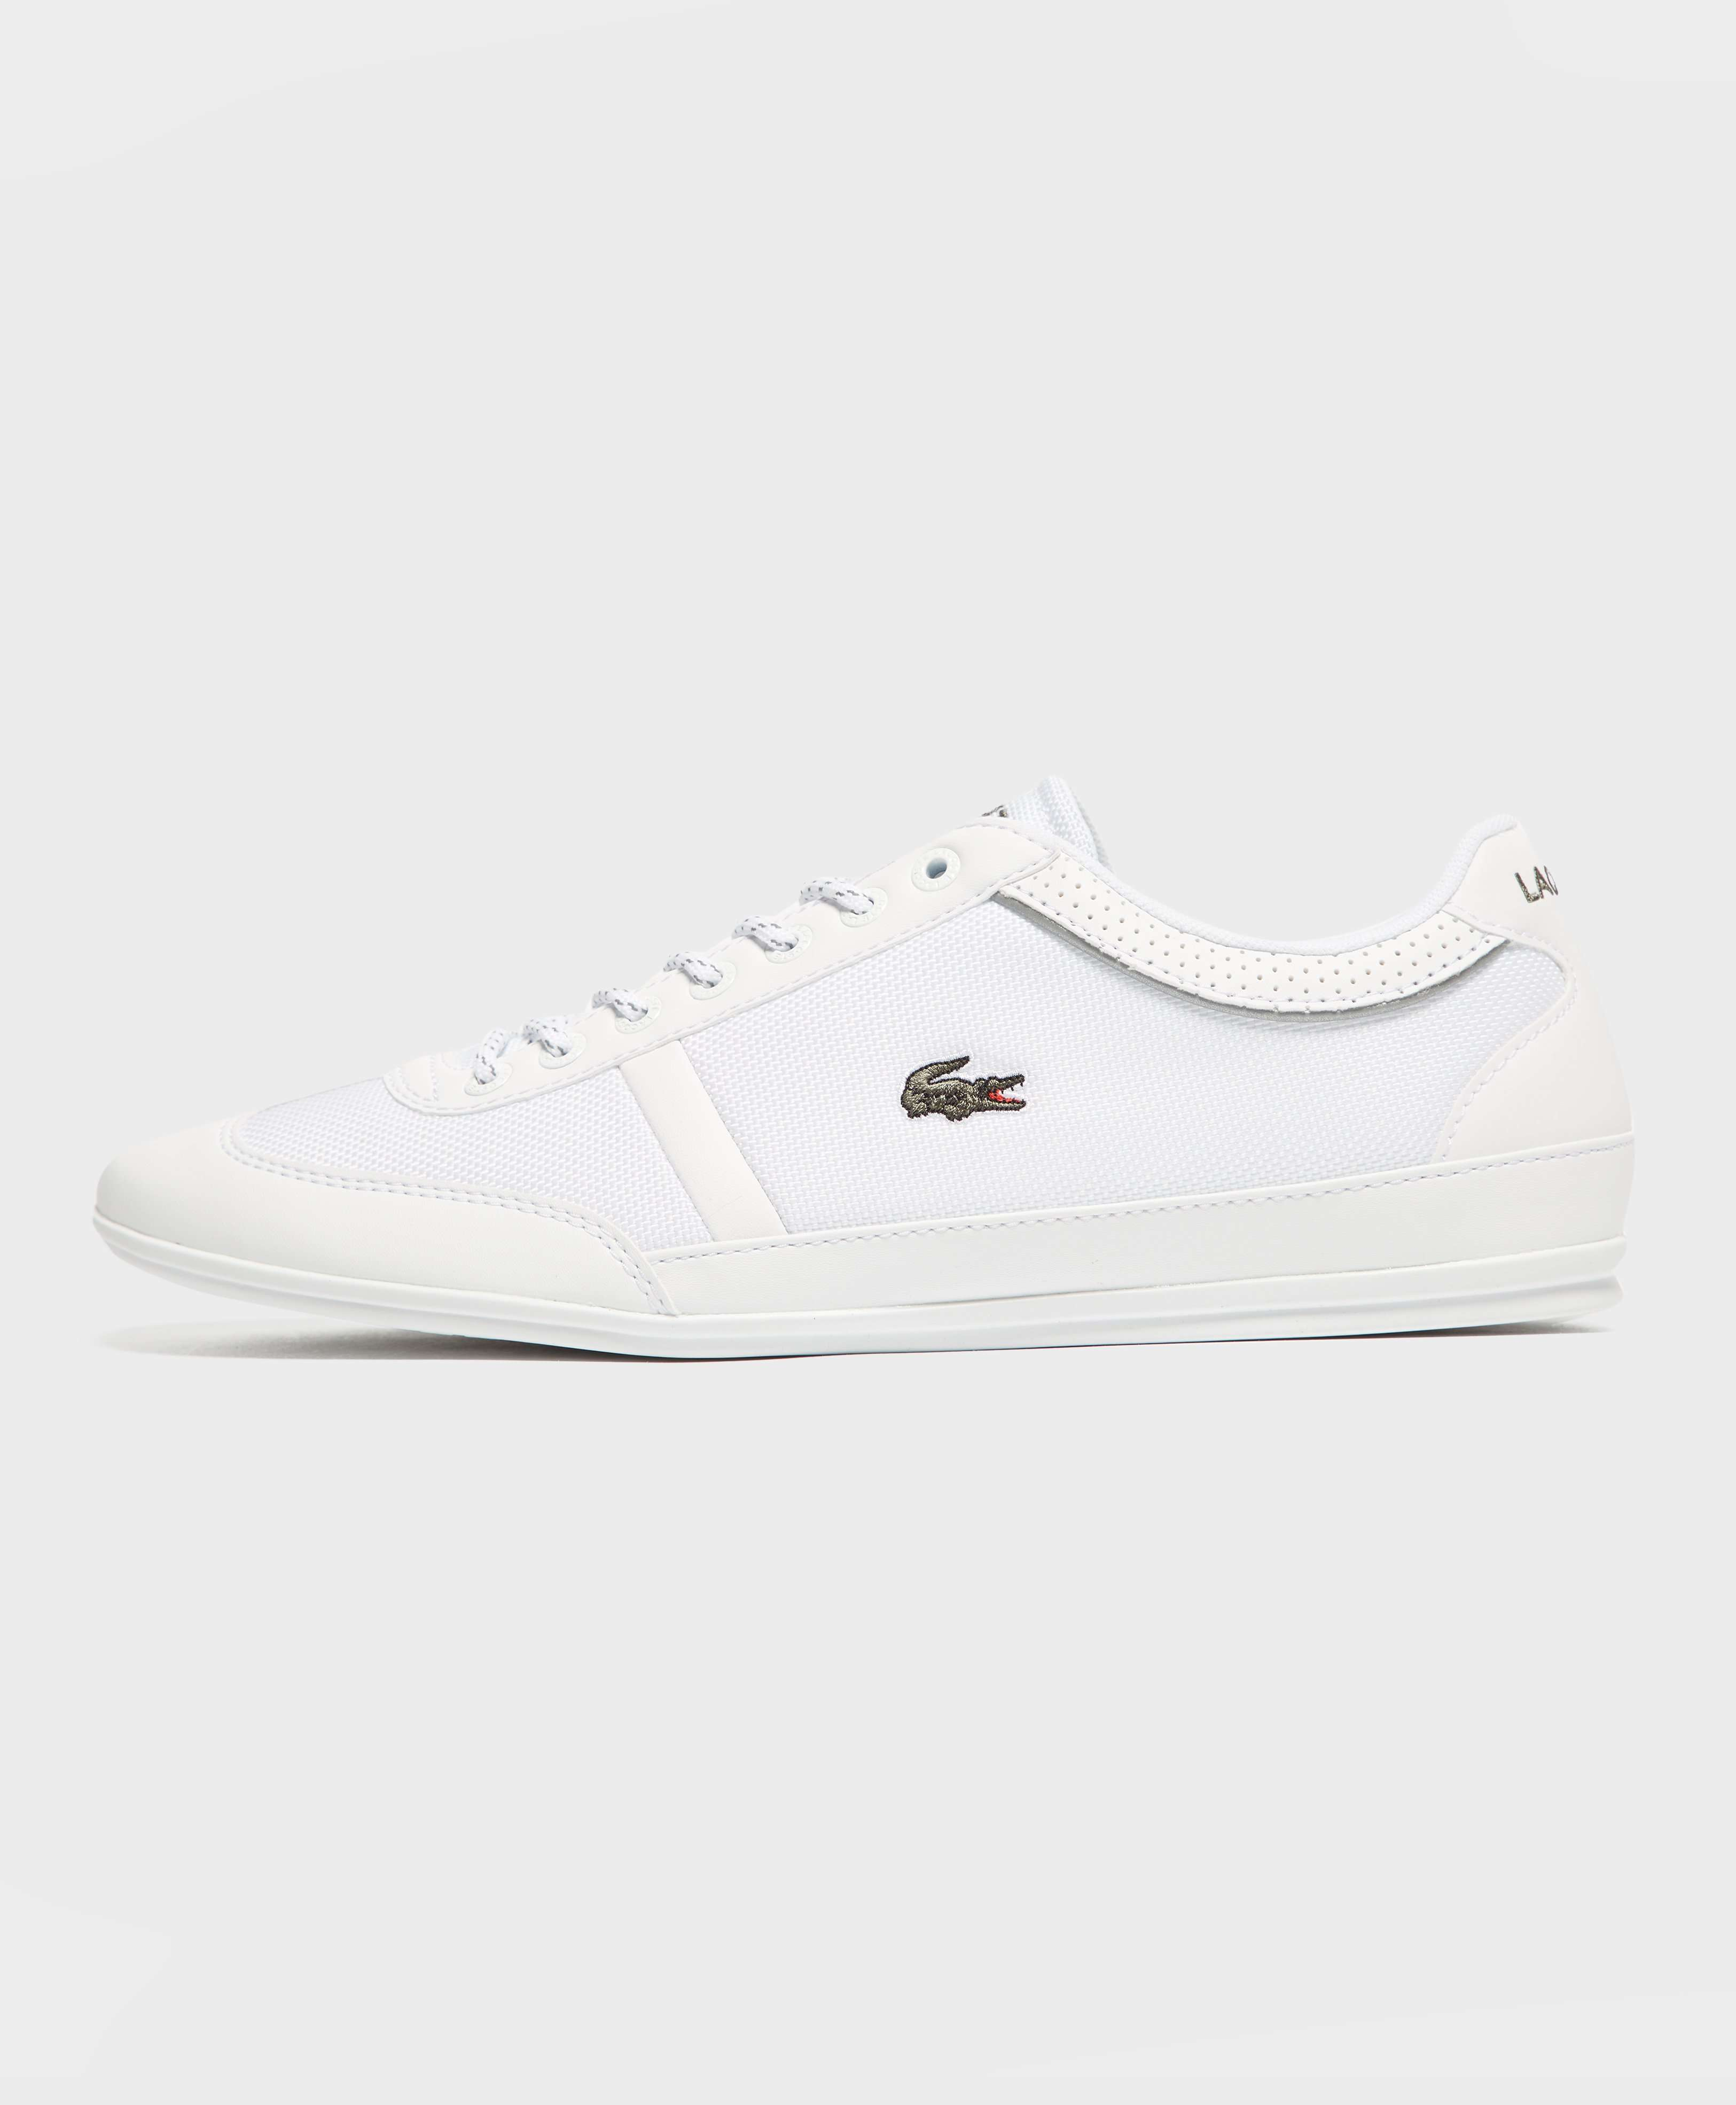 449399366 trainers lacoste misano available via PricePi.com. Shop the entire ...